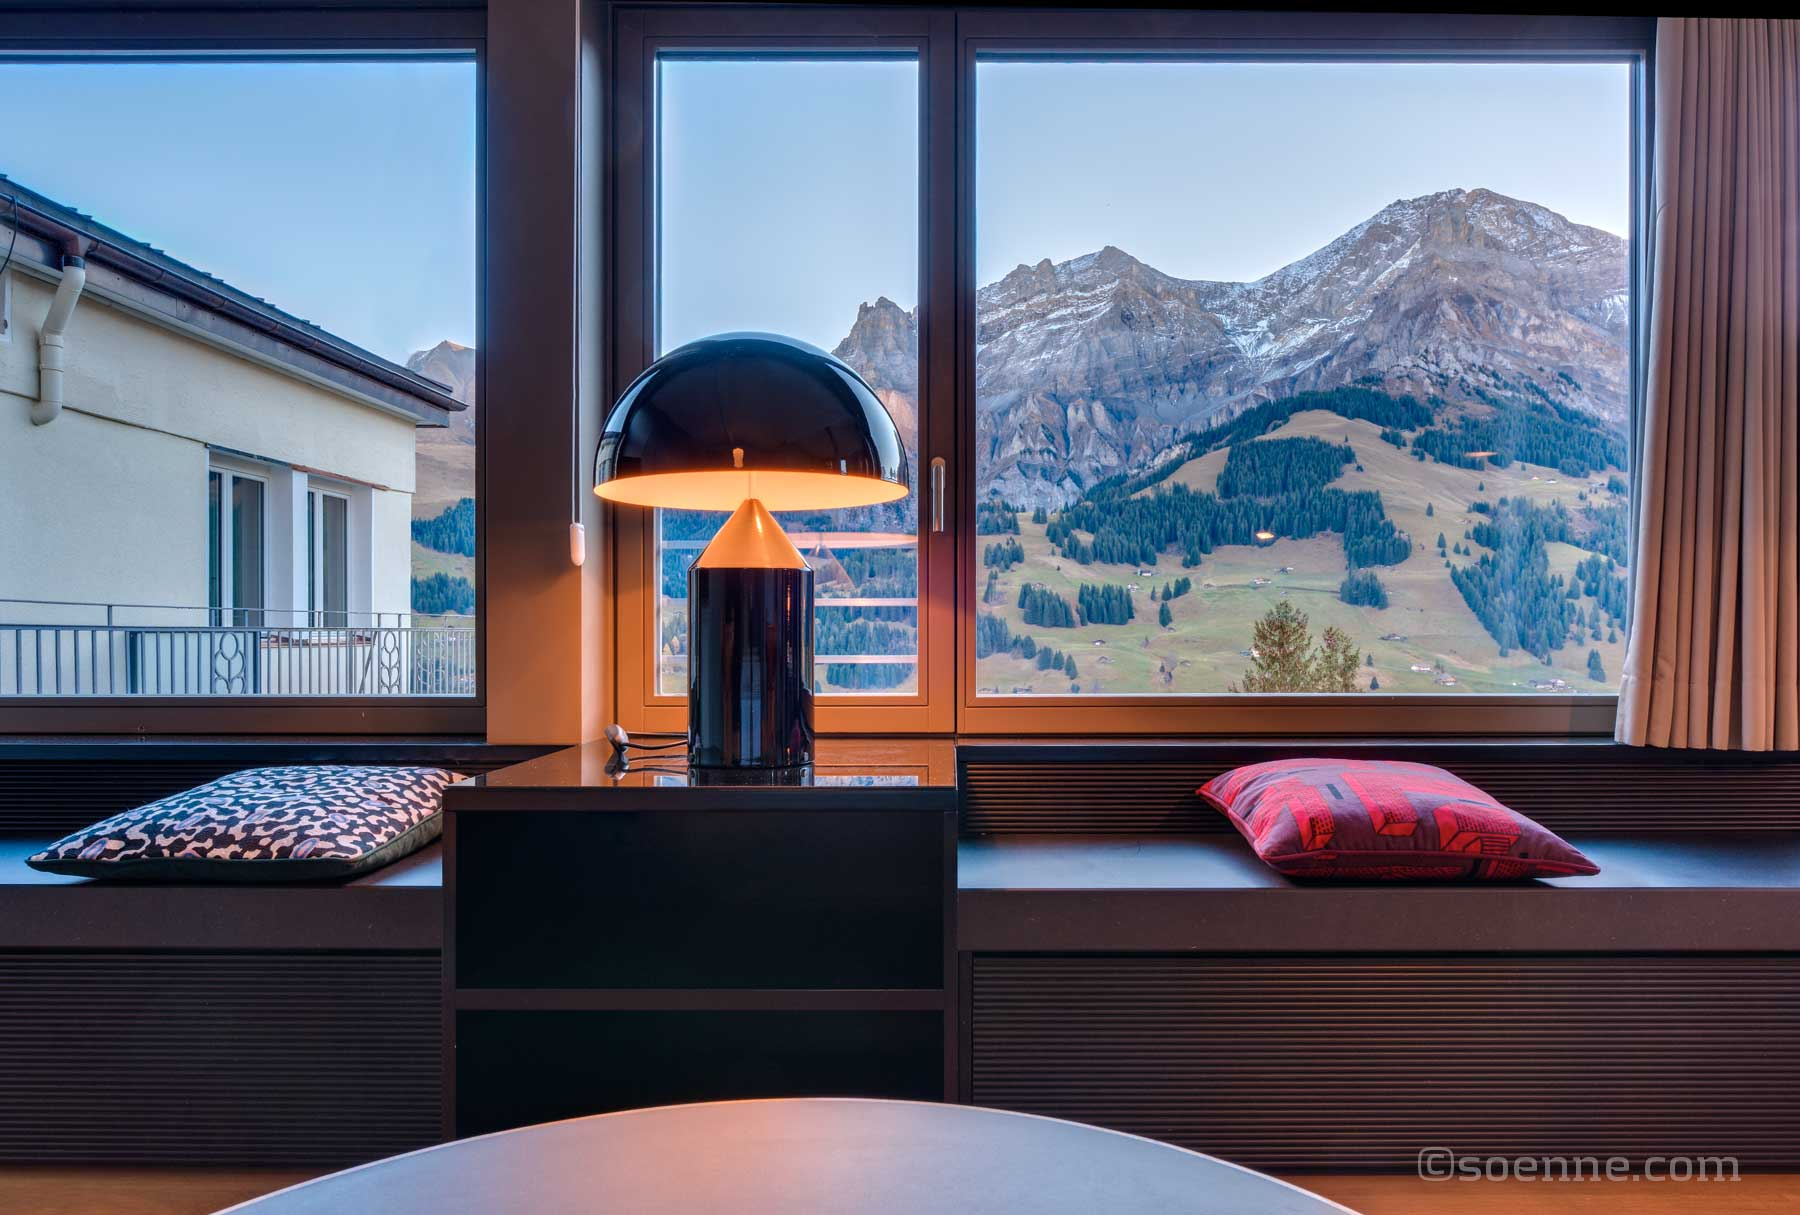 adelboden bellevue soenne hotelfotografie. Black Bedroom Furniture Sets. Home Design Ideas